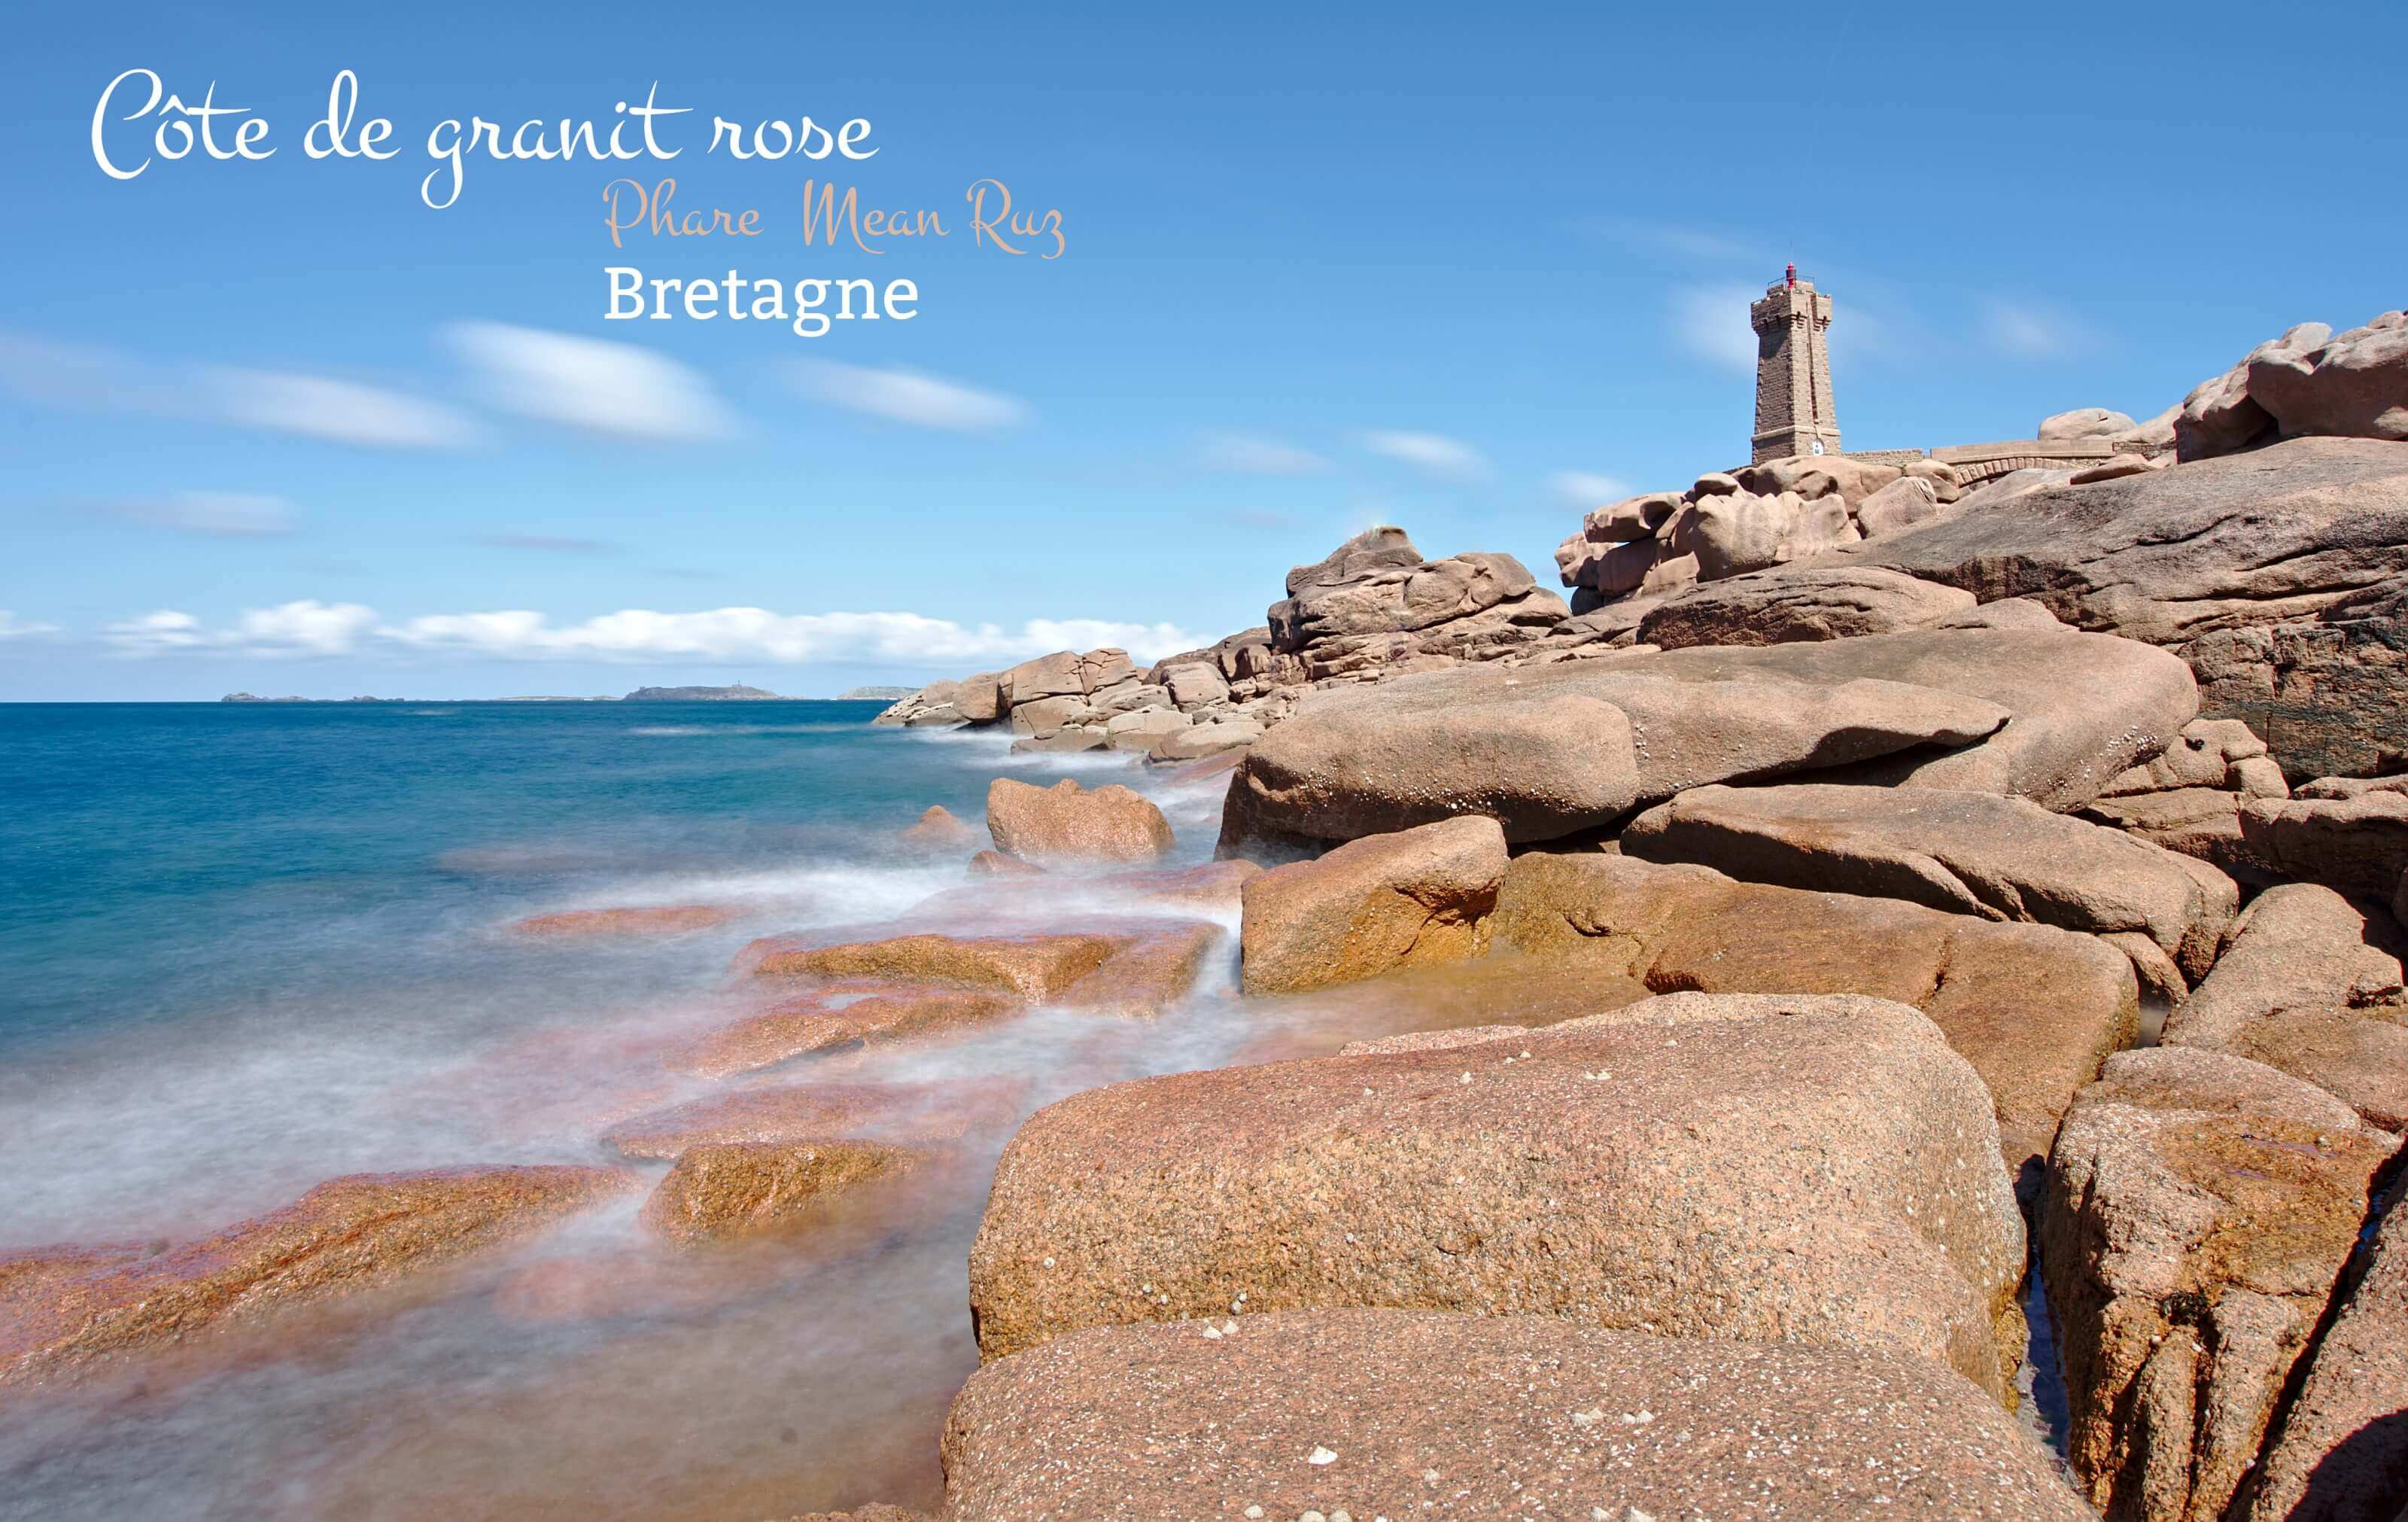 Bretagne a la d couverte de la c te de granit rose for Photo de granite